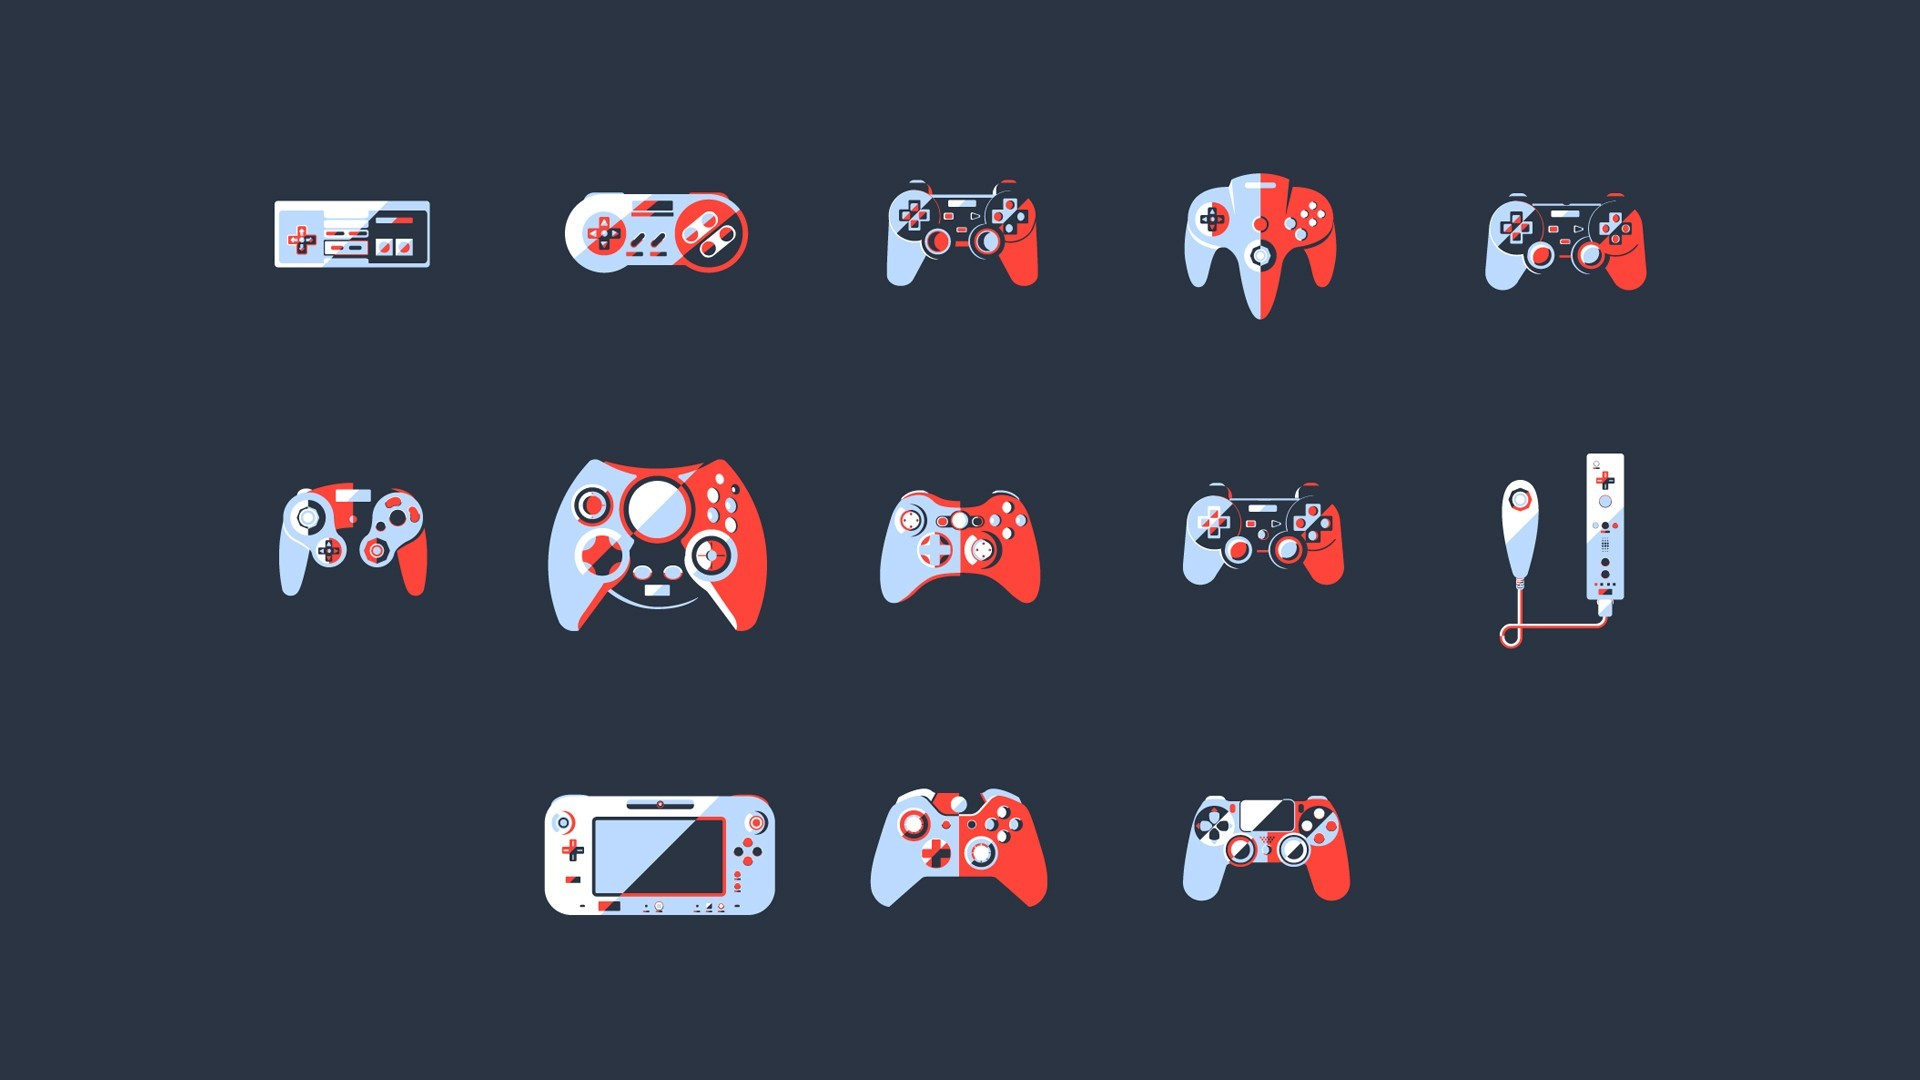 video Games, Controllers, Simple Background, PlayStation, Xbox, Nintendo  Entertainment System, Minimalism, Dreamcast, SNES, N64, GameCube Wallpapers  HD …